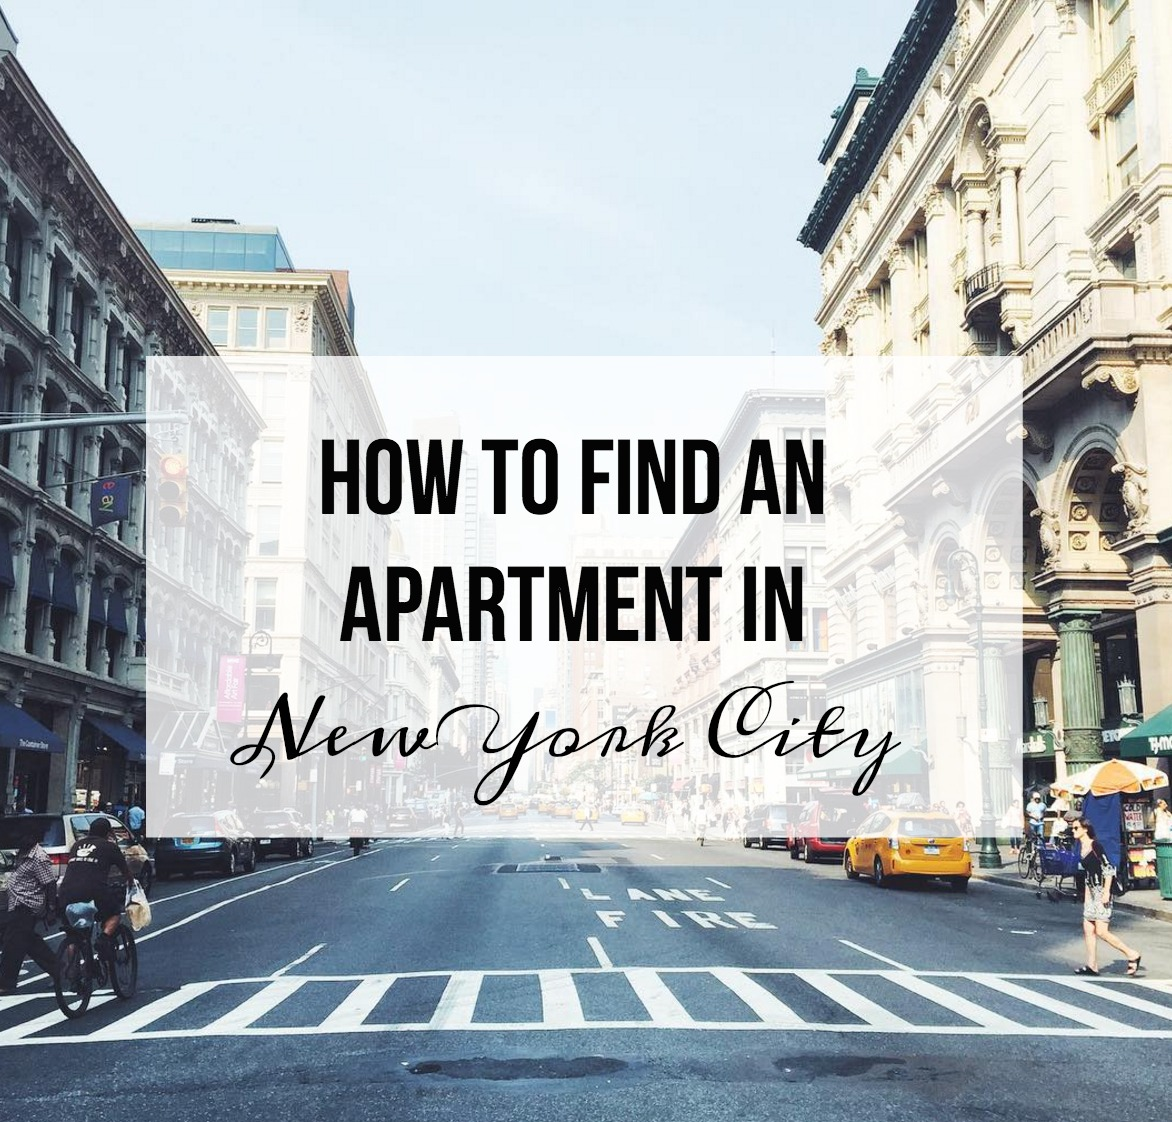 Find An Appartment: How To Find An Apartment In New York